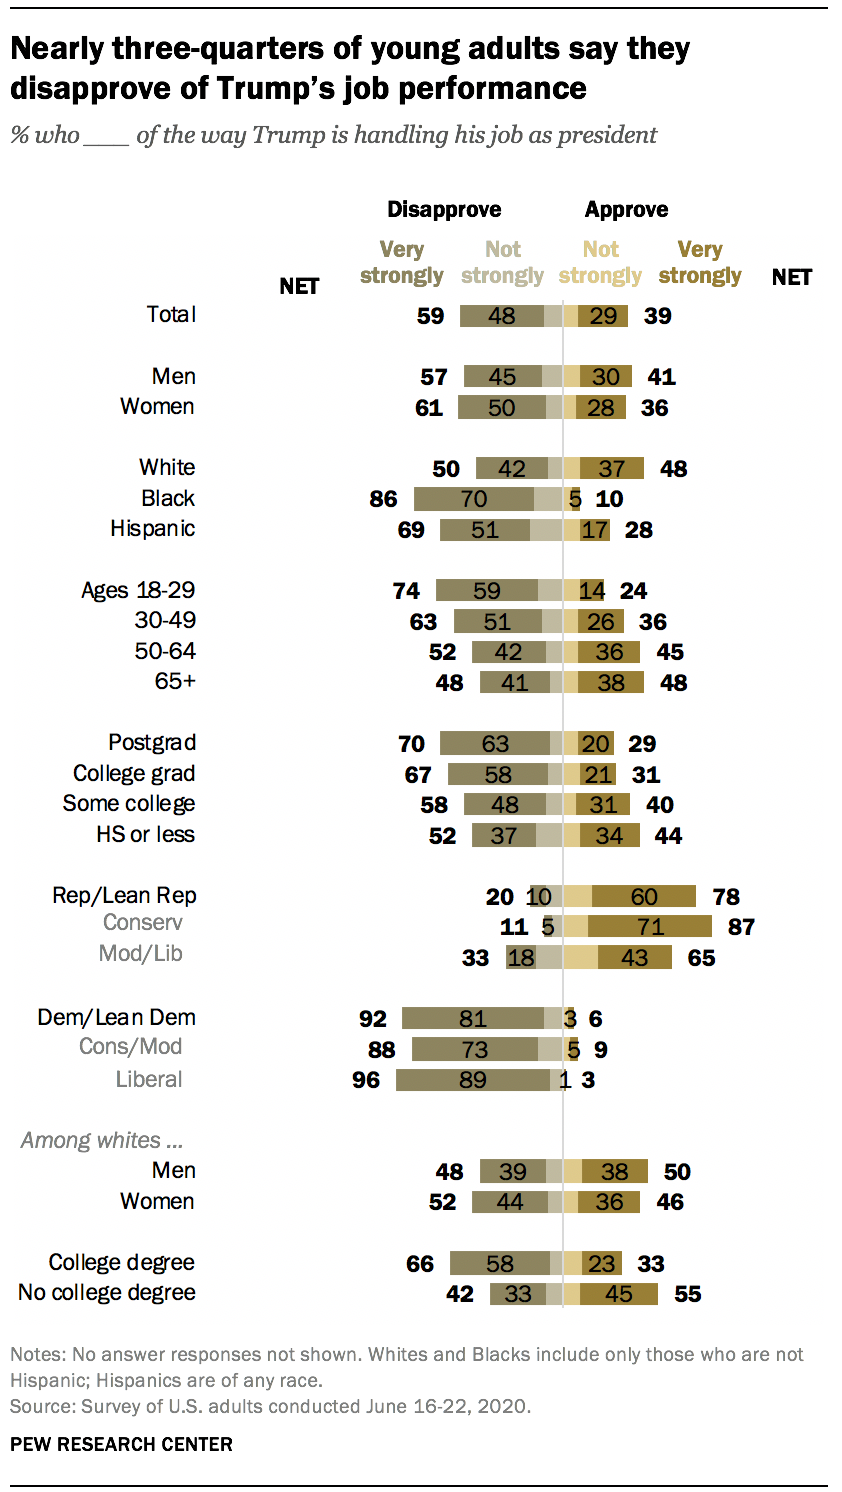 Nearly three-quarters of young adults say they disapprove of Trump's job performance